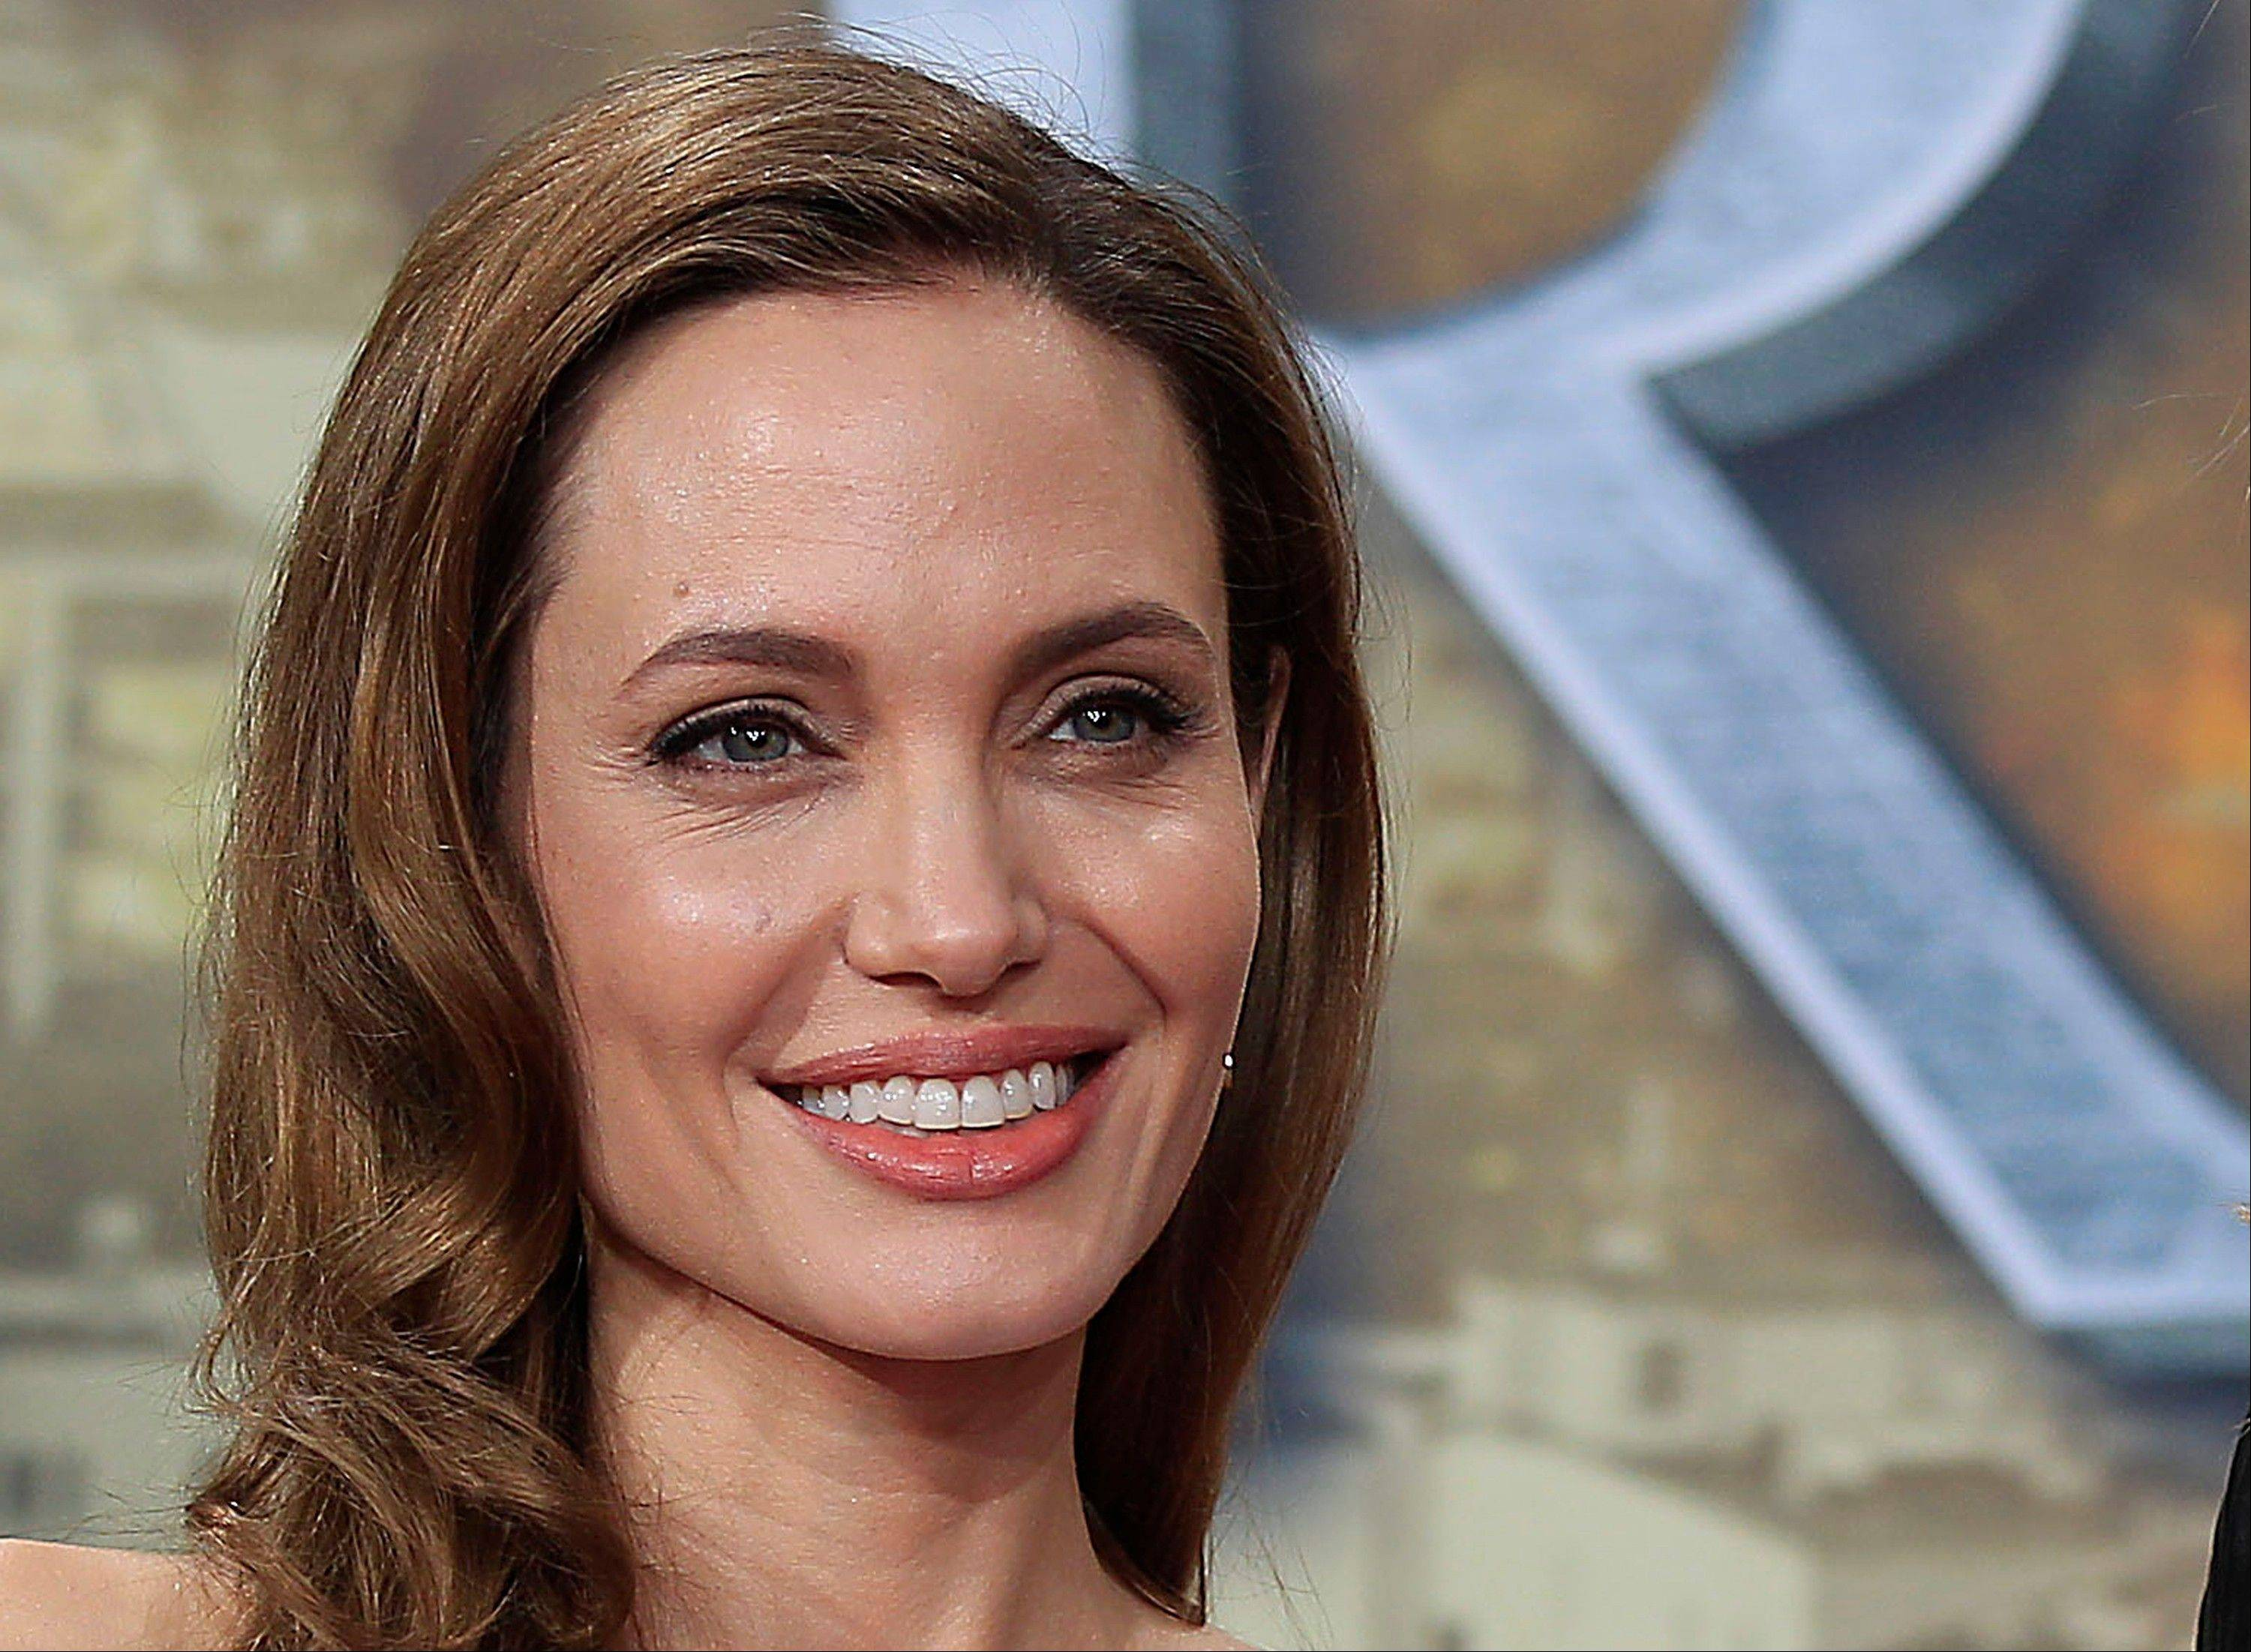 The Supreme Court ruled that companies cannot patent parts of naturally-occurring human genes throws out patents held by Utah-based Myriad Genetics Inc. on an increasingly popular breast cancer test brought into the public eye recently by actress Angelina Jolie, seen here, who revealed she had a double mastectomy because of one of the genes involved in this case.